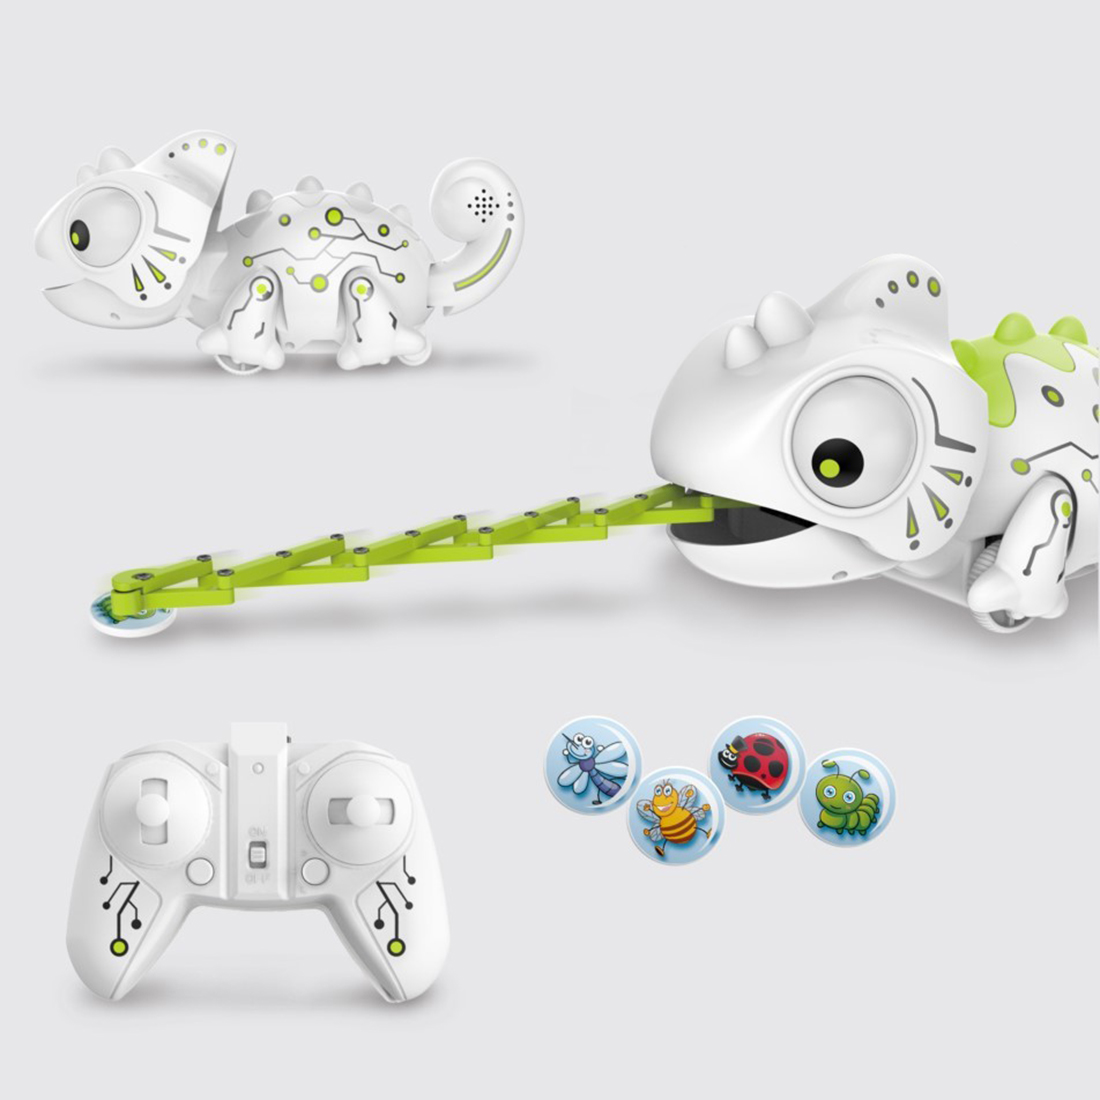 2.4G Remote Control Chameleon Lizard Robot Hungry Chameleon With 12 Kinds Of Colorful Light Changing Puzzle Toys For Children